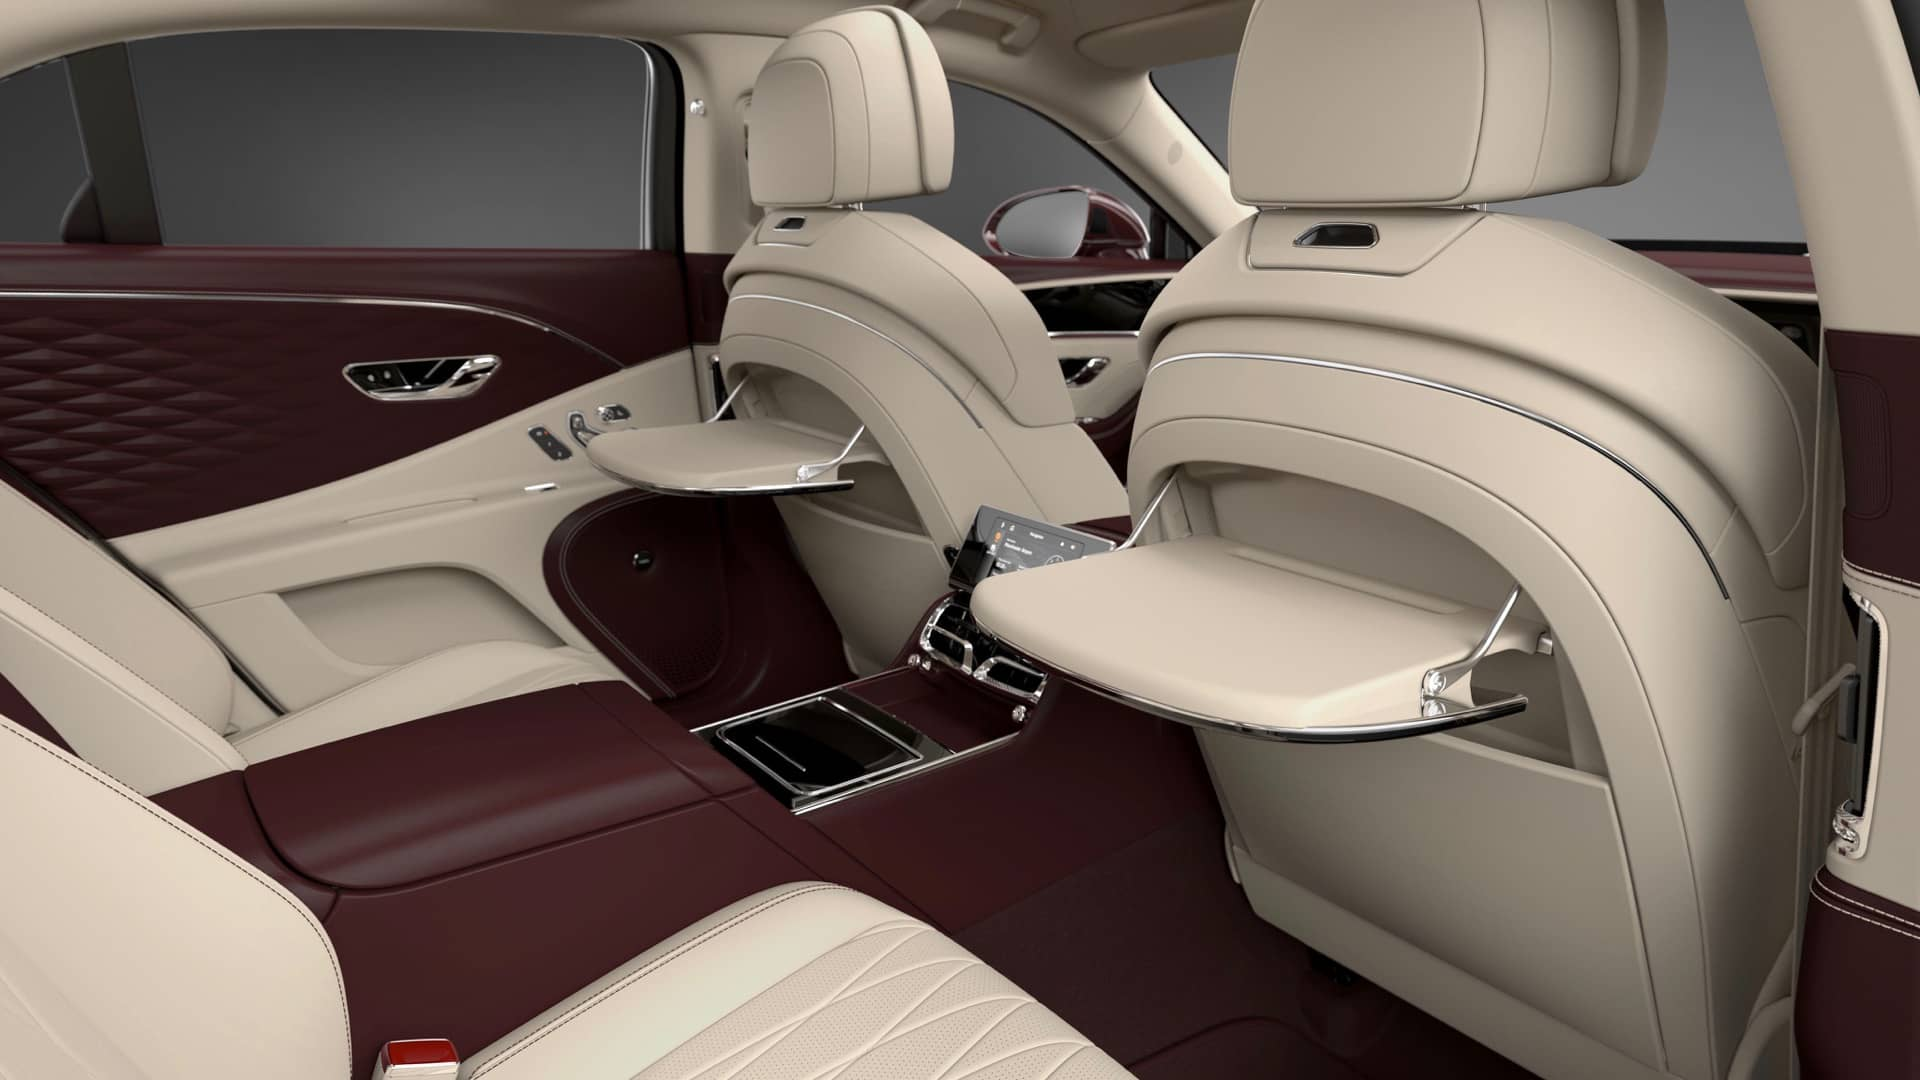 2021-bentley-flying-spur_100751301_h